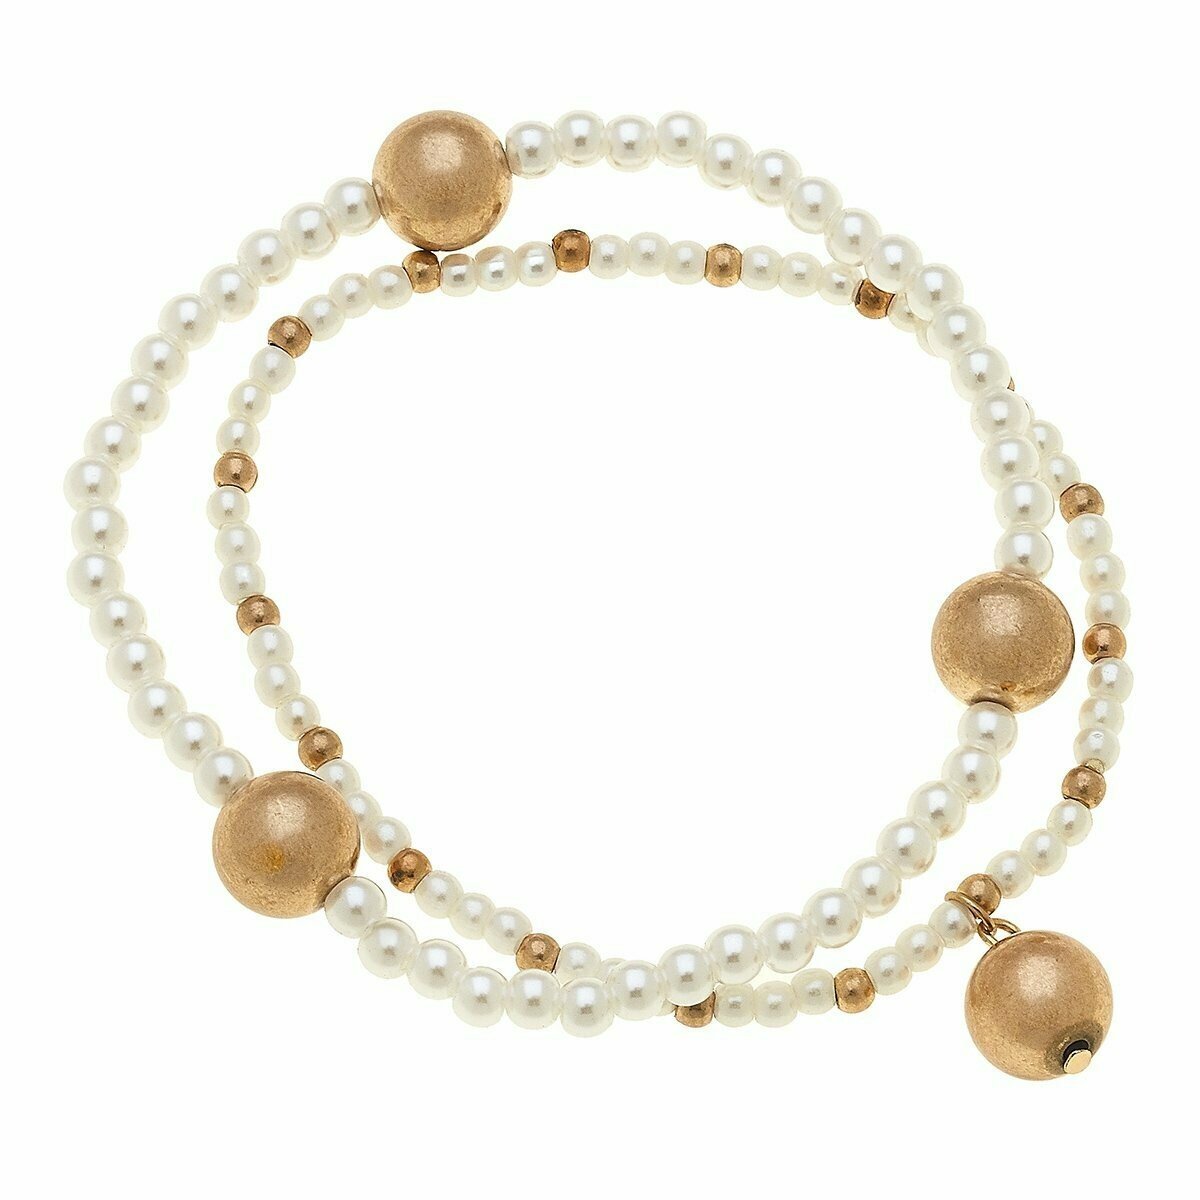 Layered Pearl Bracelets In Worn Gold Spheres (Set of 2)